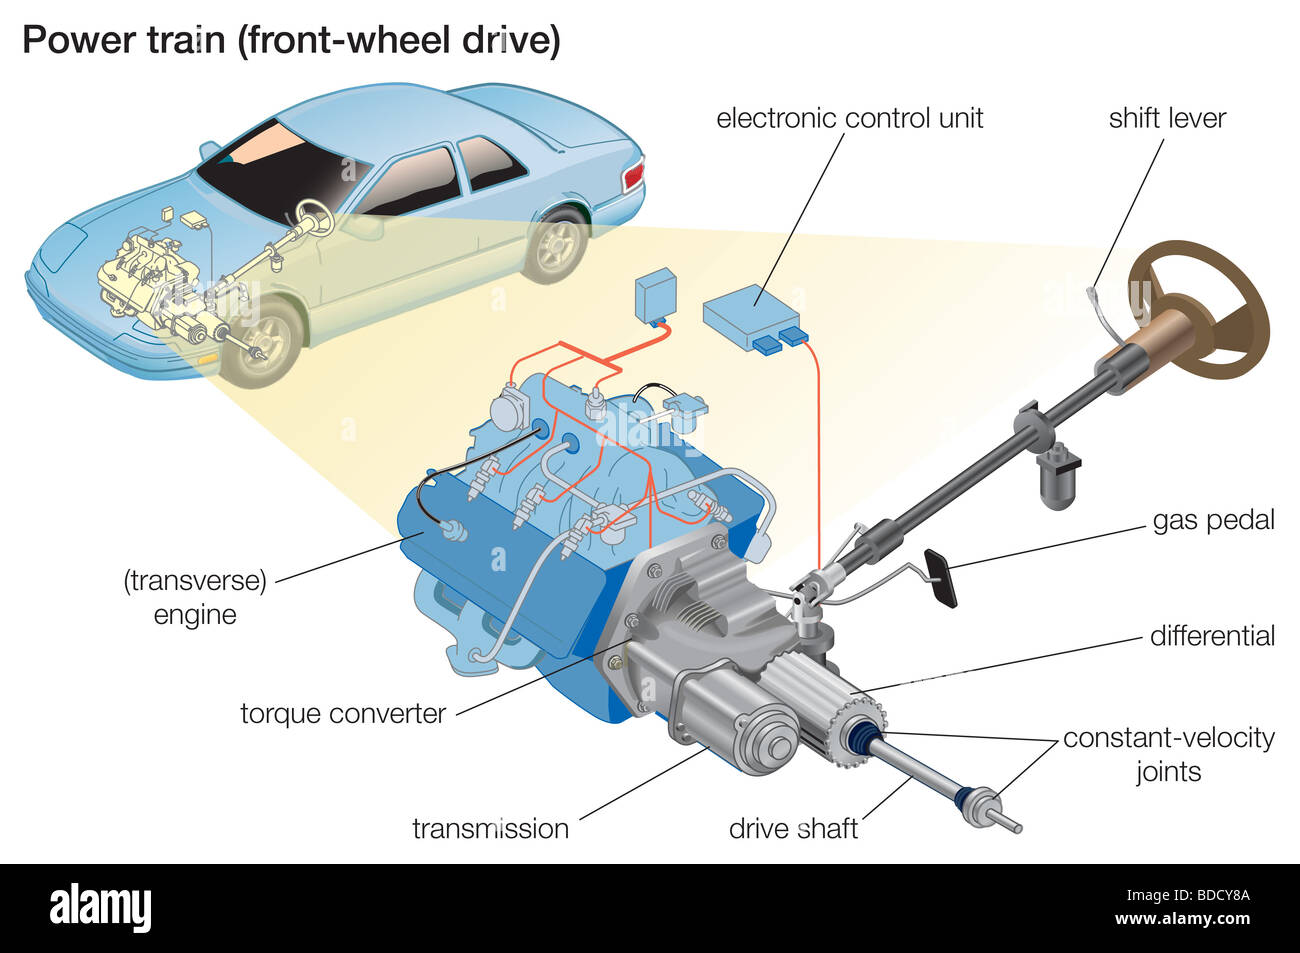 hight resolution of front wheel drive stock image